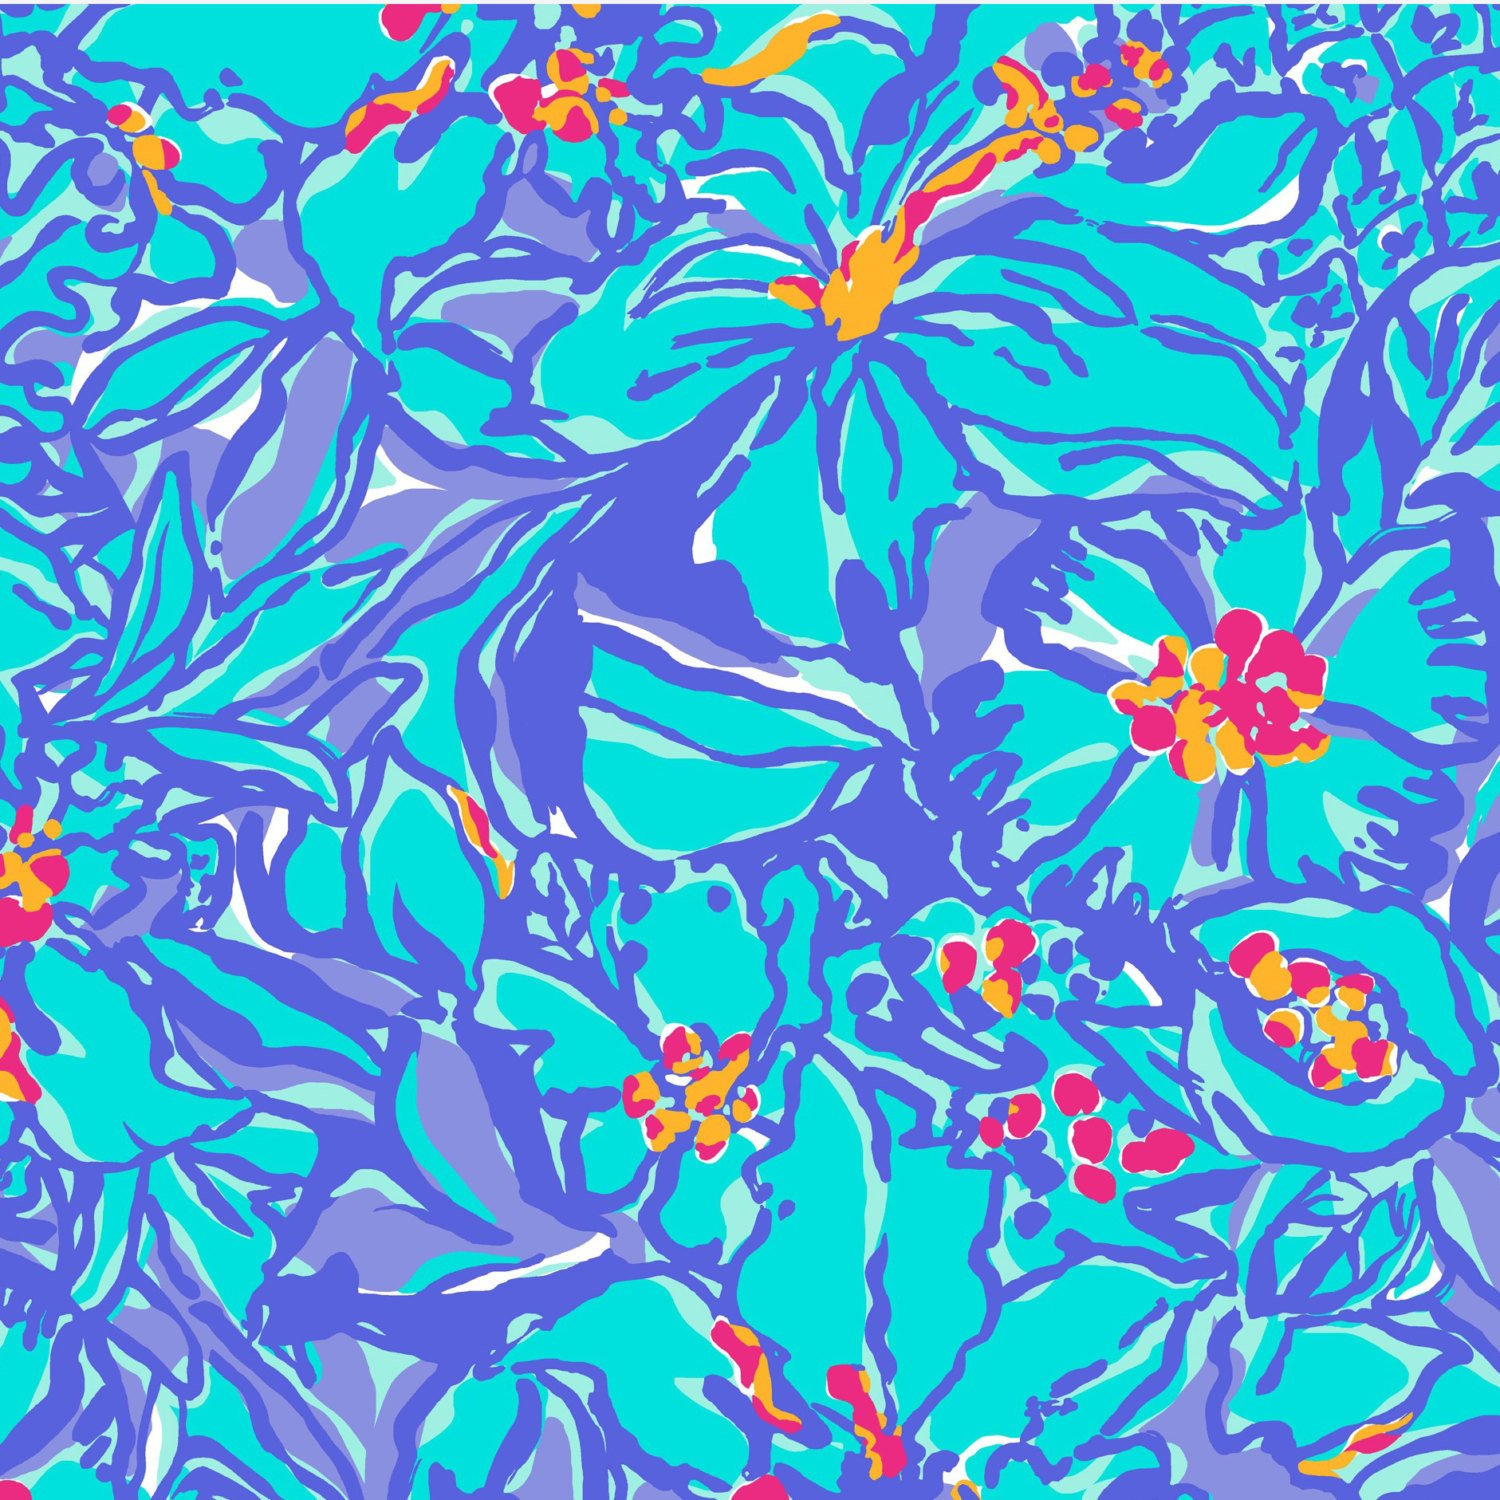 Mai Tai Purple Blue Floral Lilly Inspired Printed Patterned Craft Vinyl